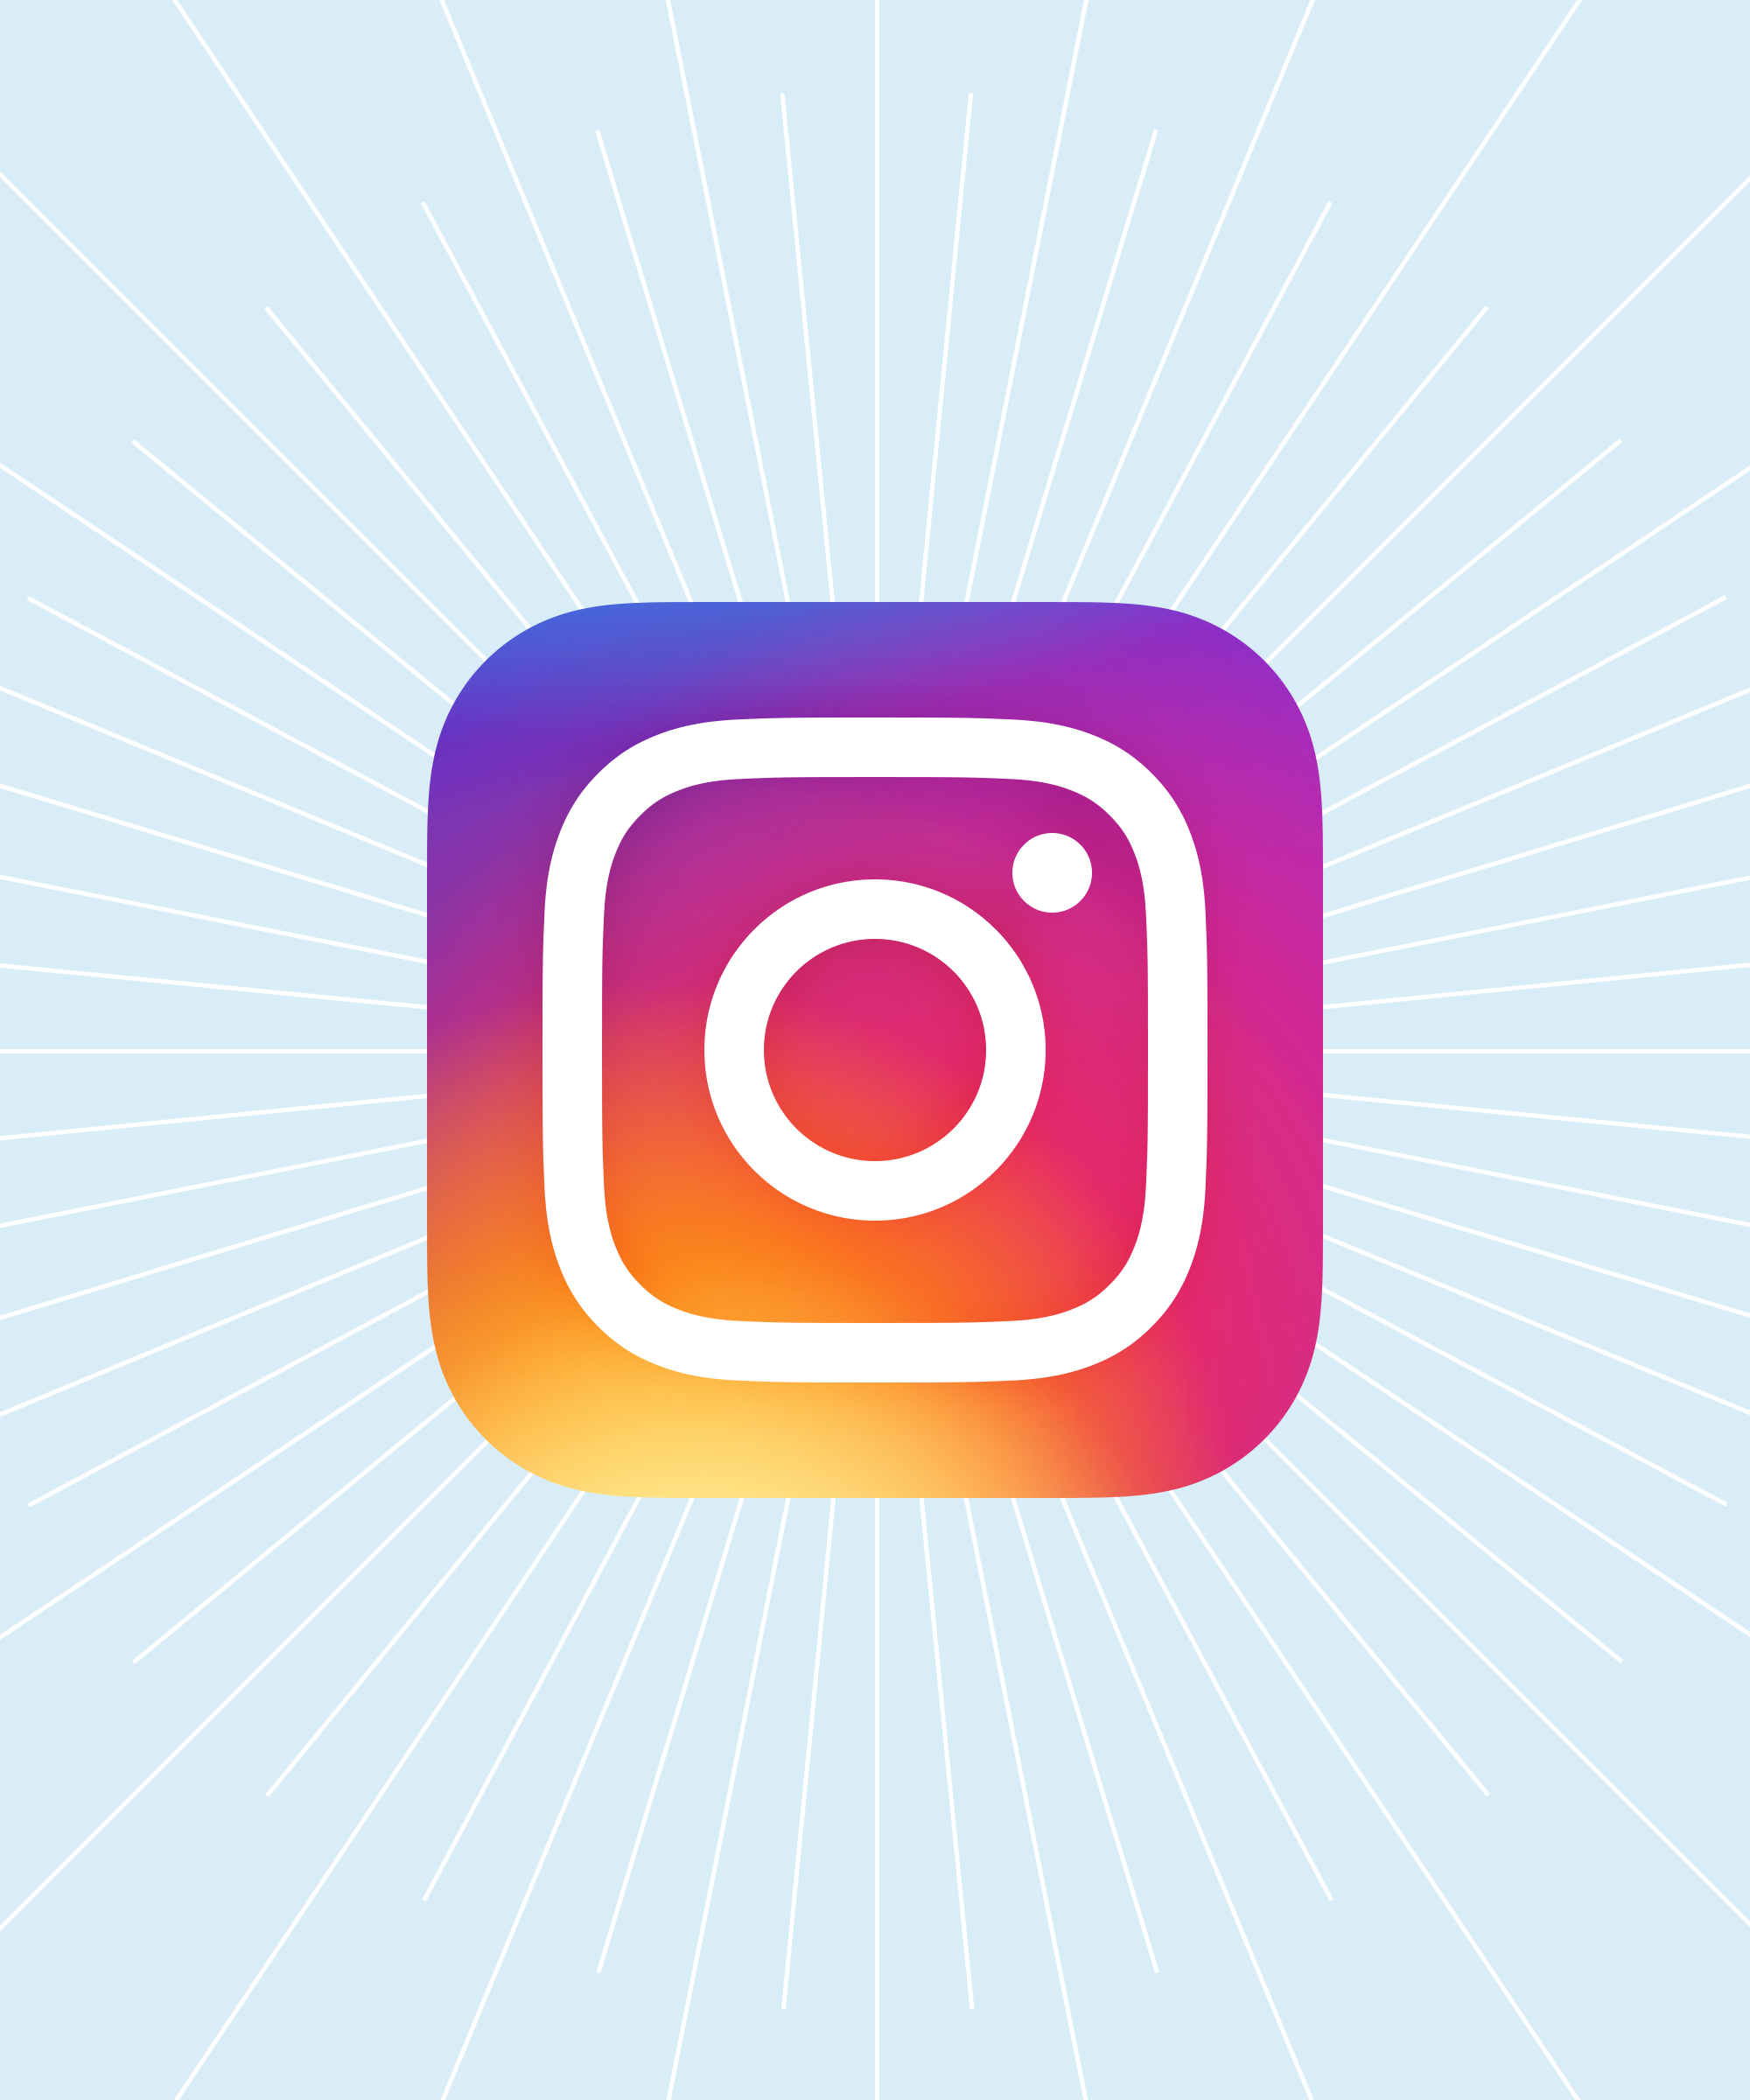 Best Filter Apps For Instagram - Extra Filters Apps